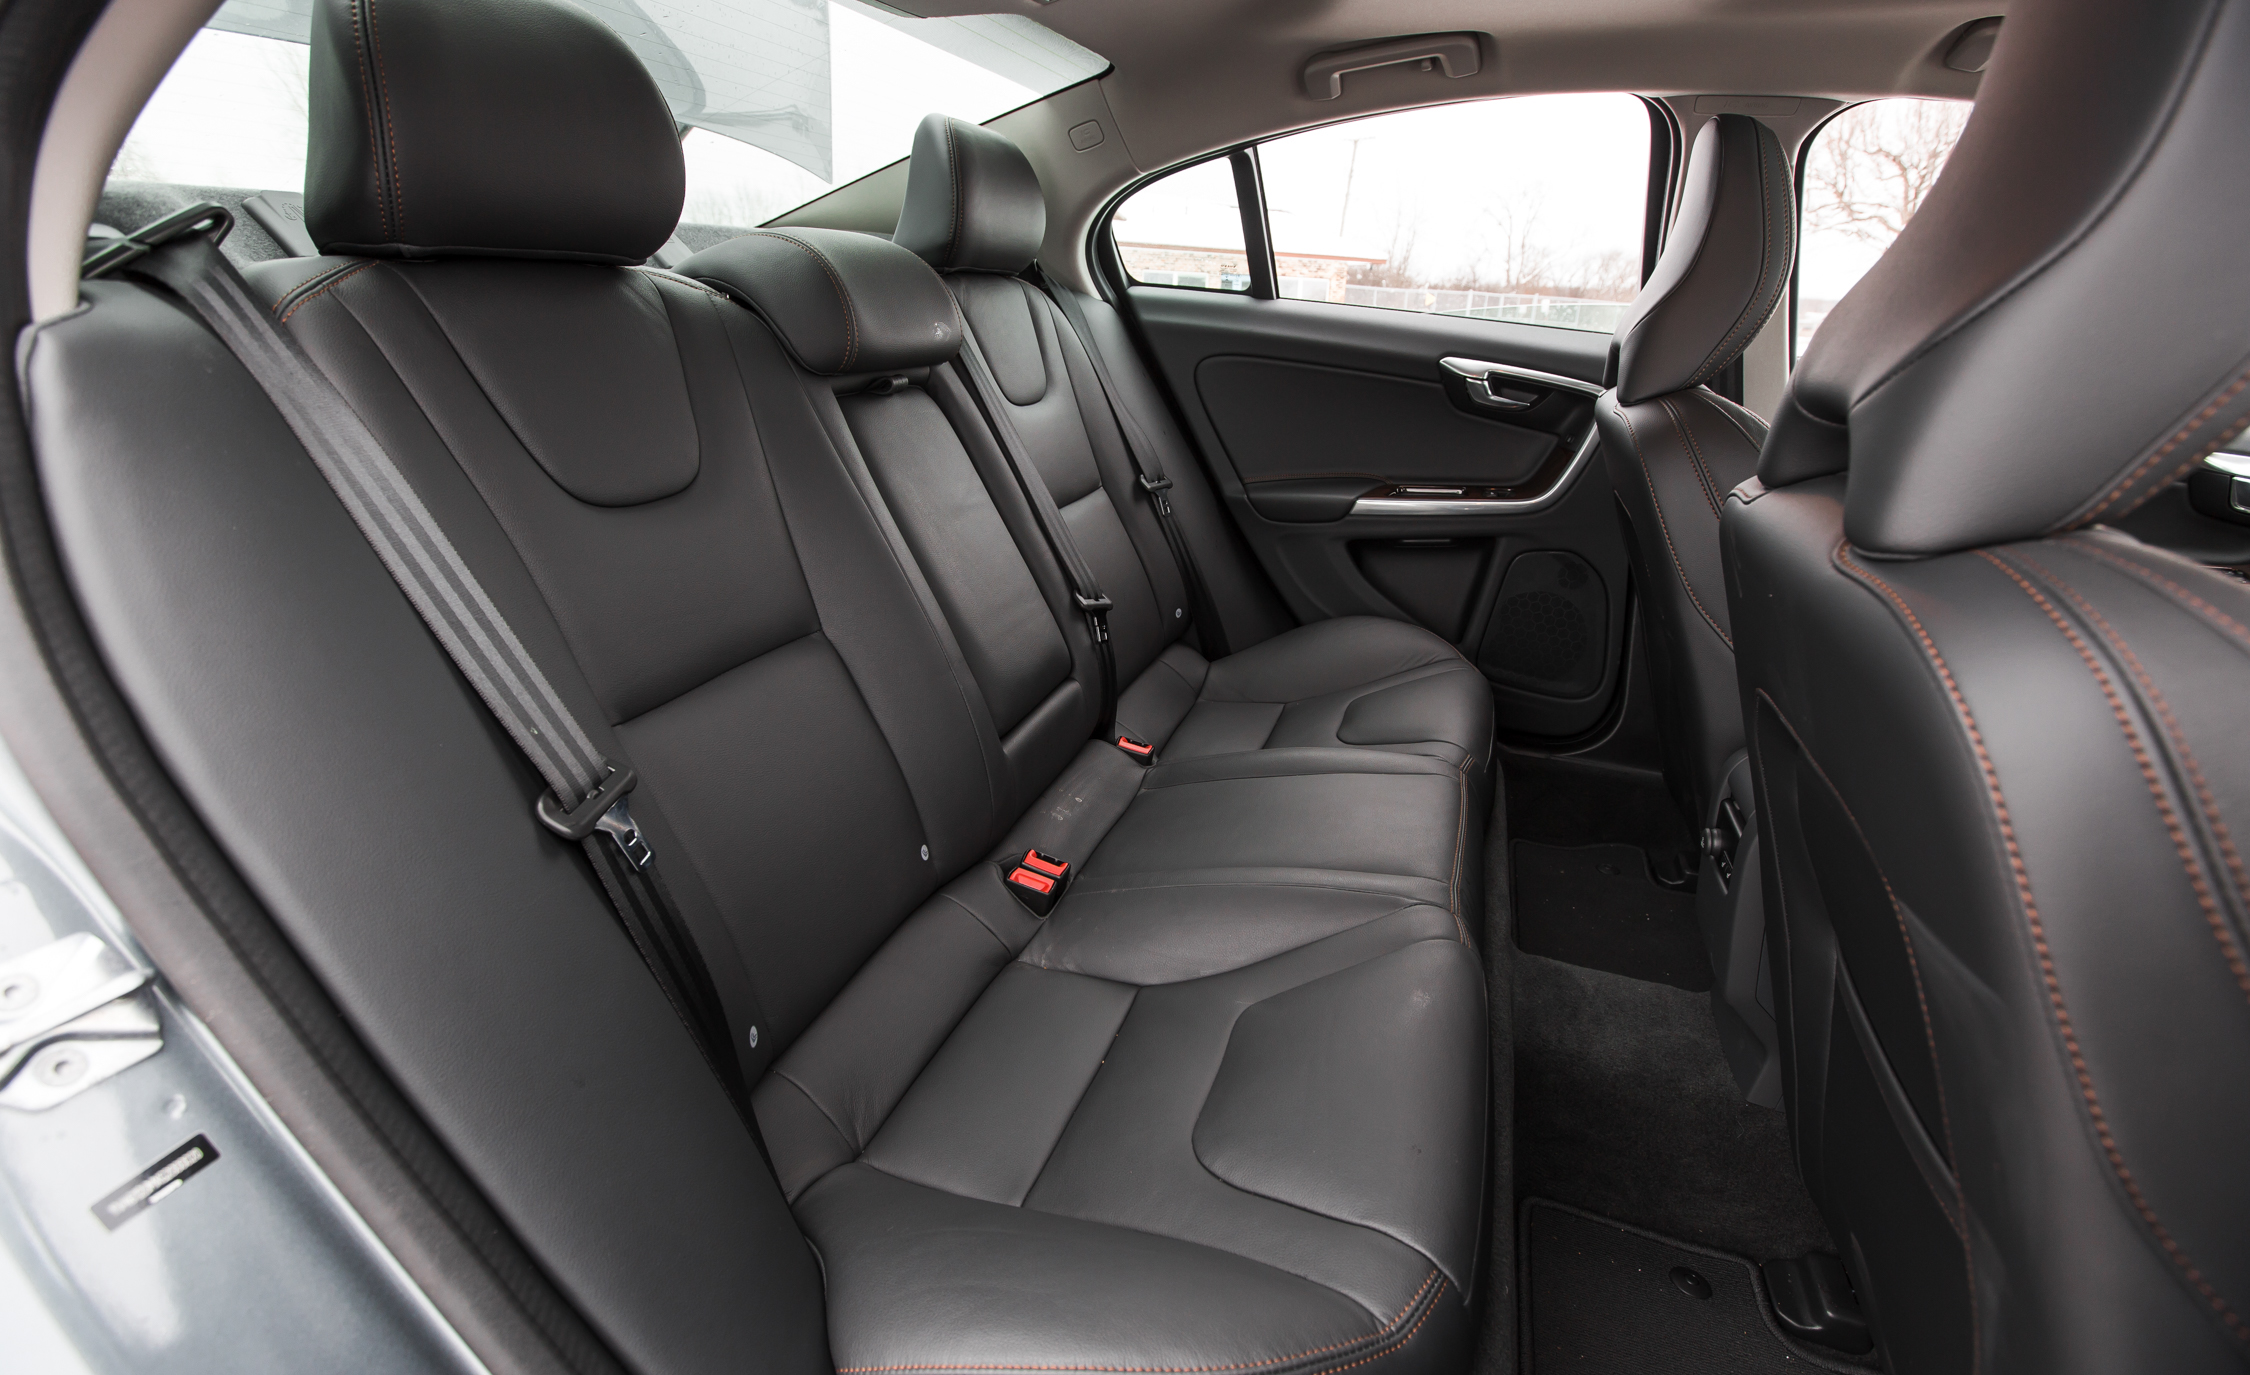 2016 Volvo S60 Cross Country Interior Rear Passenger Seats